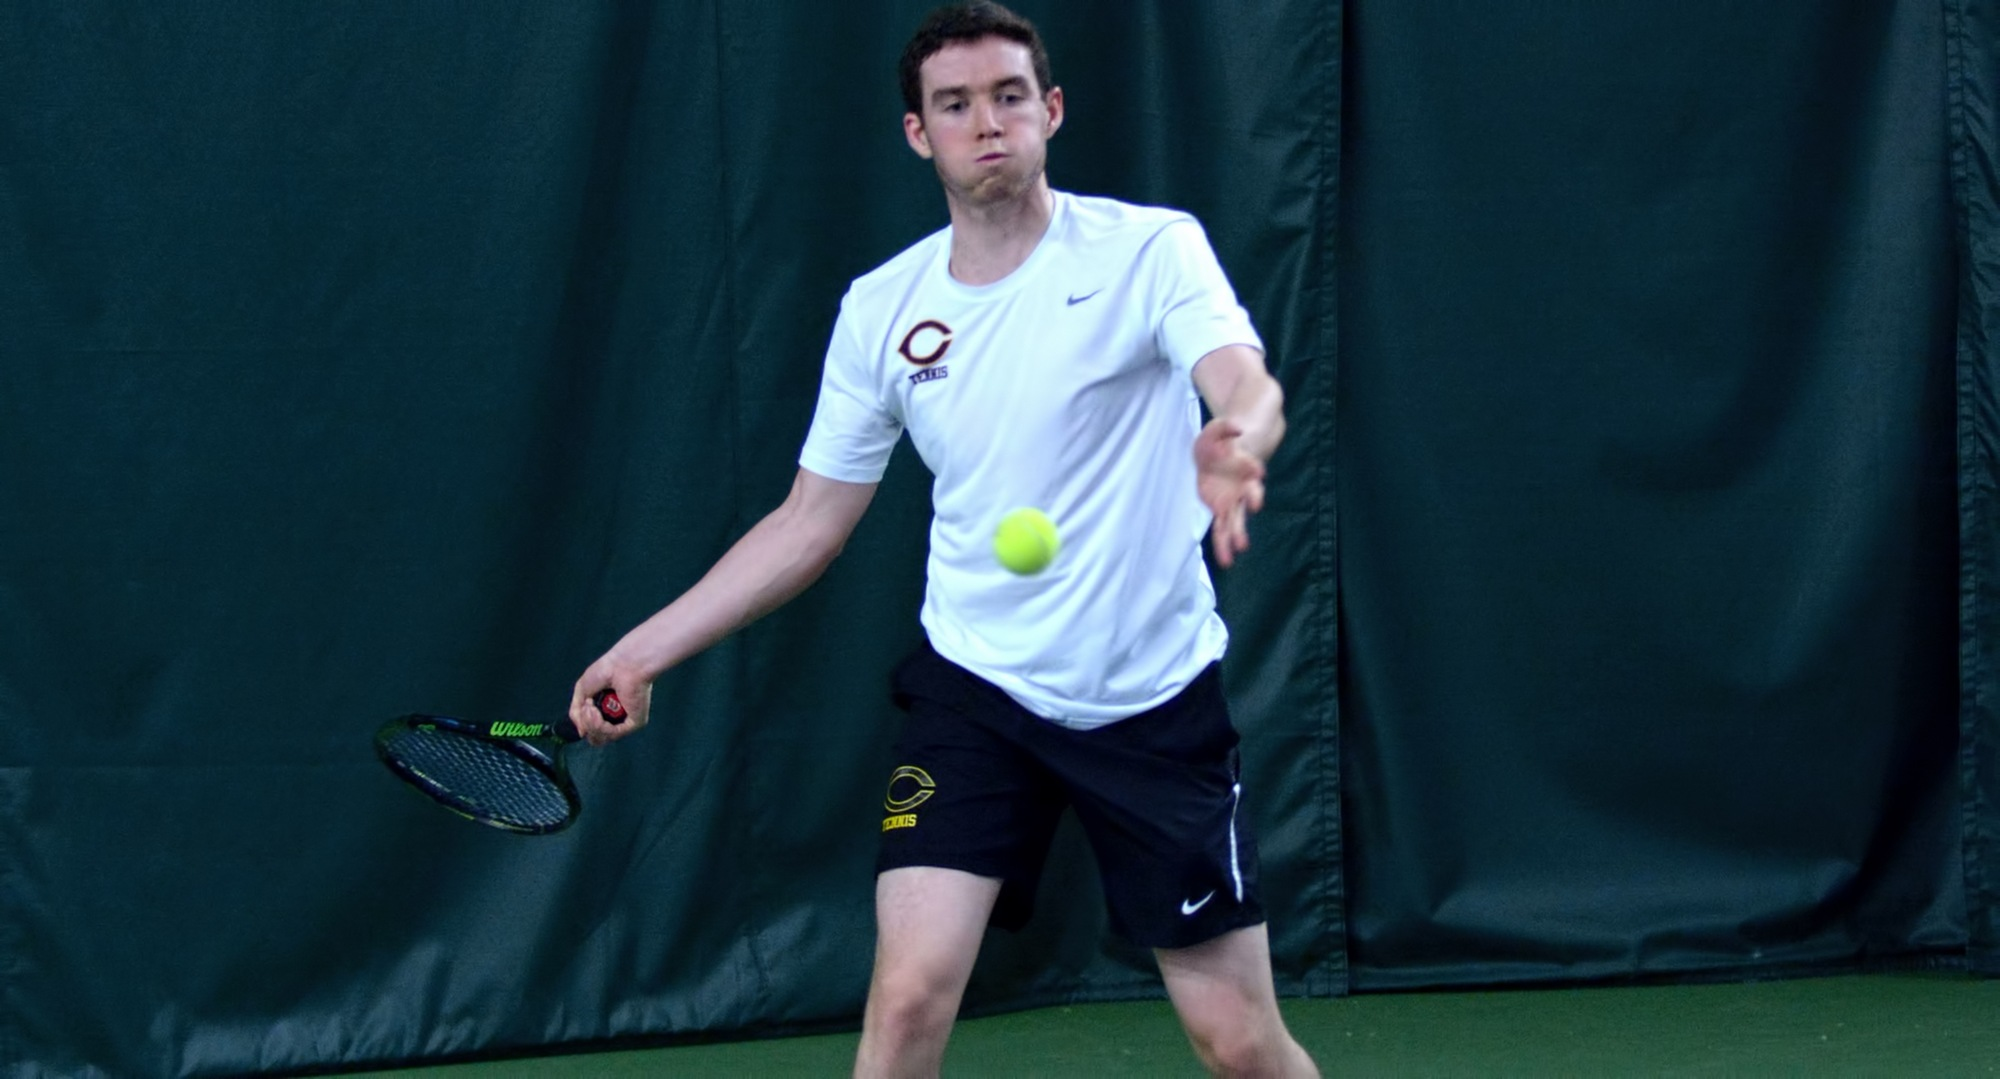 Freshman Erik Porter won his No.2 doubles match 8-2 and then cruised to a 6-4, 6-2 win at No.3 singles in the Cobbers' 9-0 victory over Northwestern.